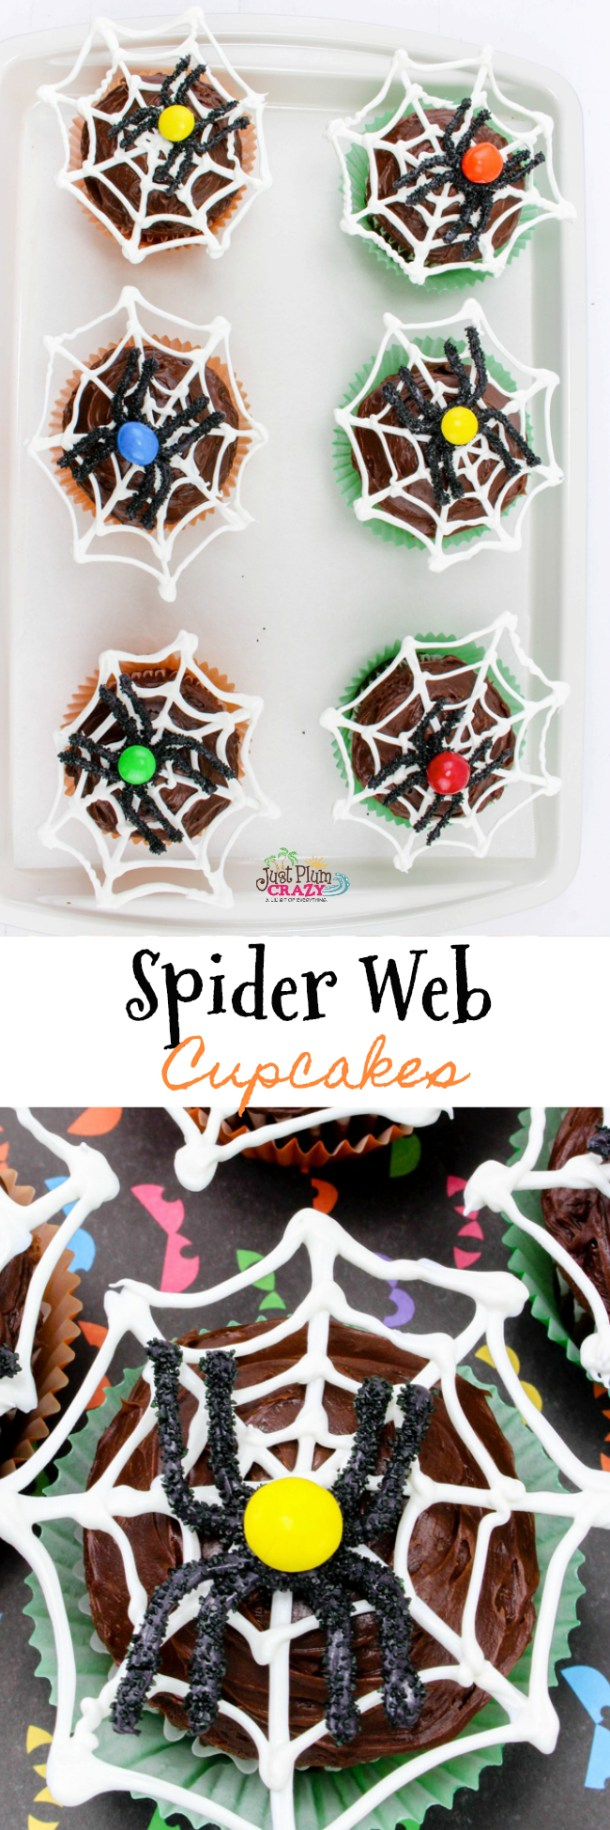 The Spider Web Cupcakes recipe is cute even if you don't like spiders. Here are a few tips to decorate your house for the festivities.